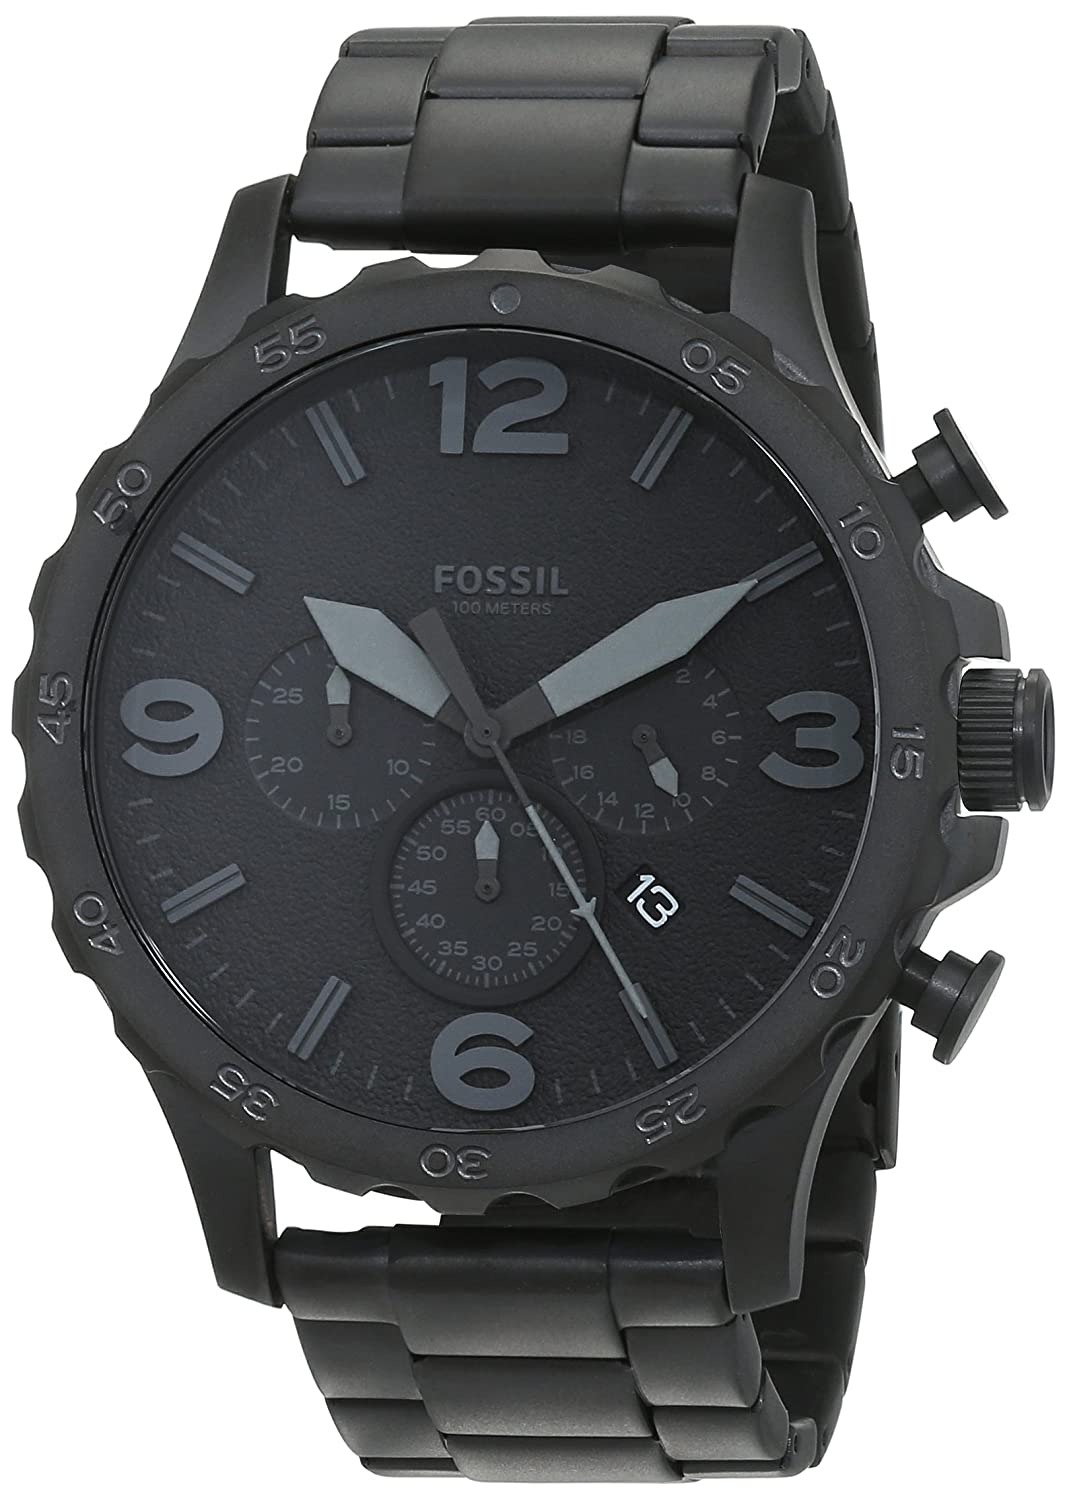 Fossil Men's Nate Quartz Stainless Steel Chronograph Watch, Color Black (Model: Jr1402) by Fossil